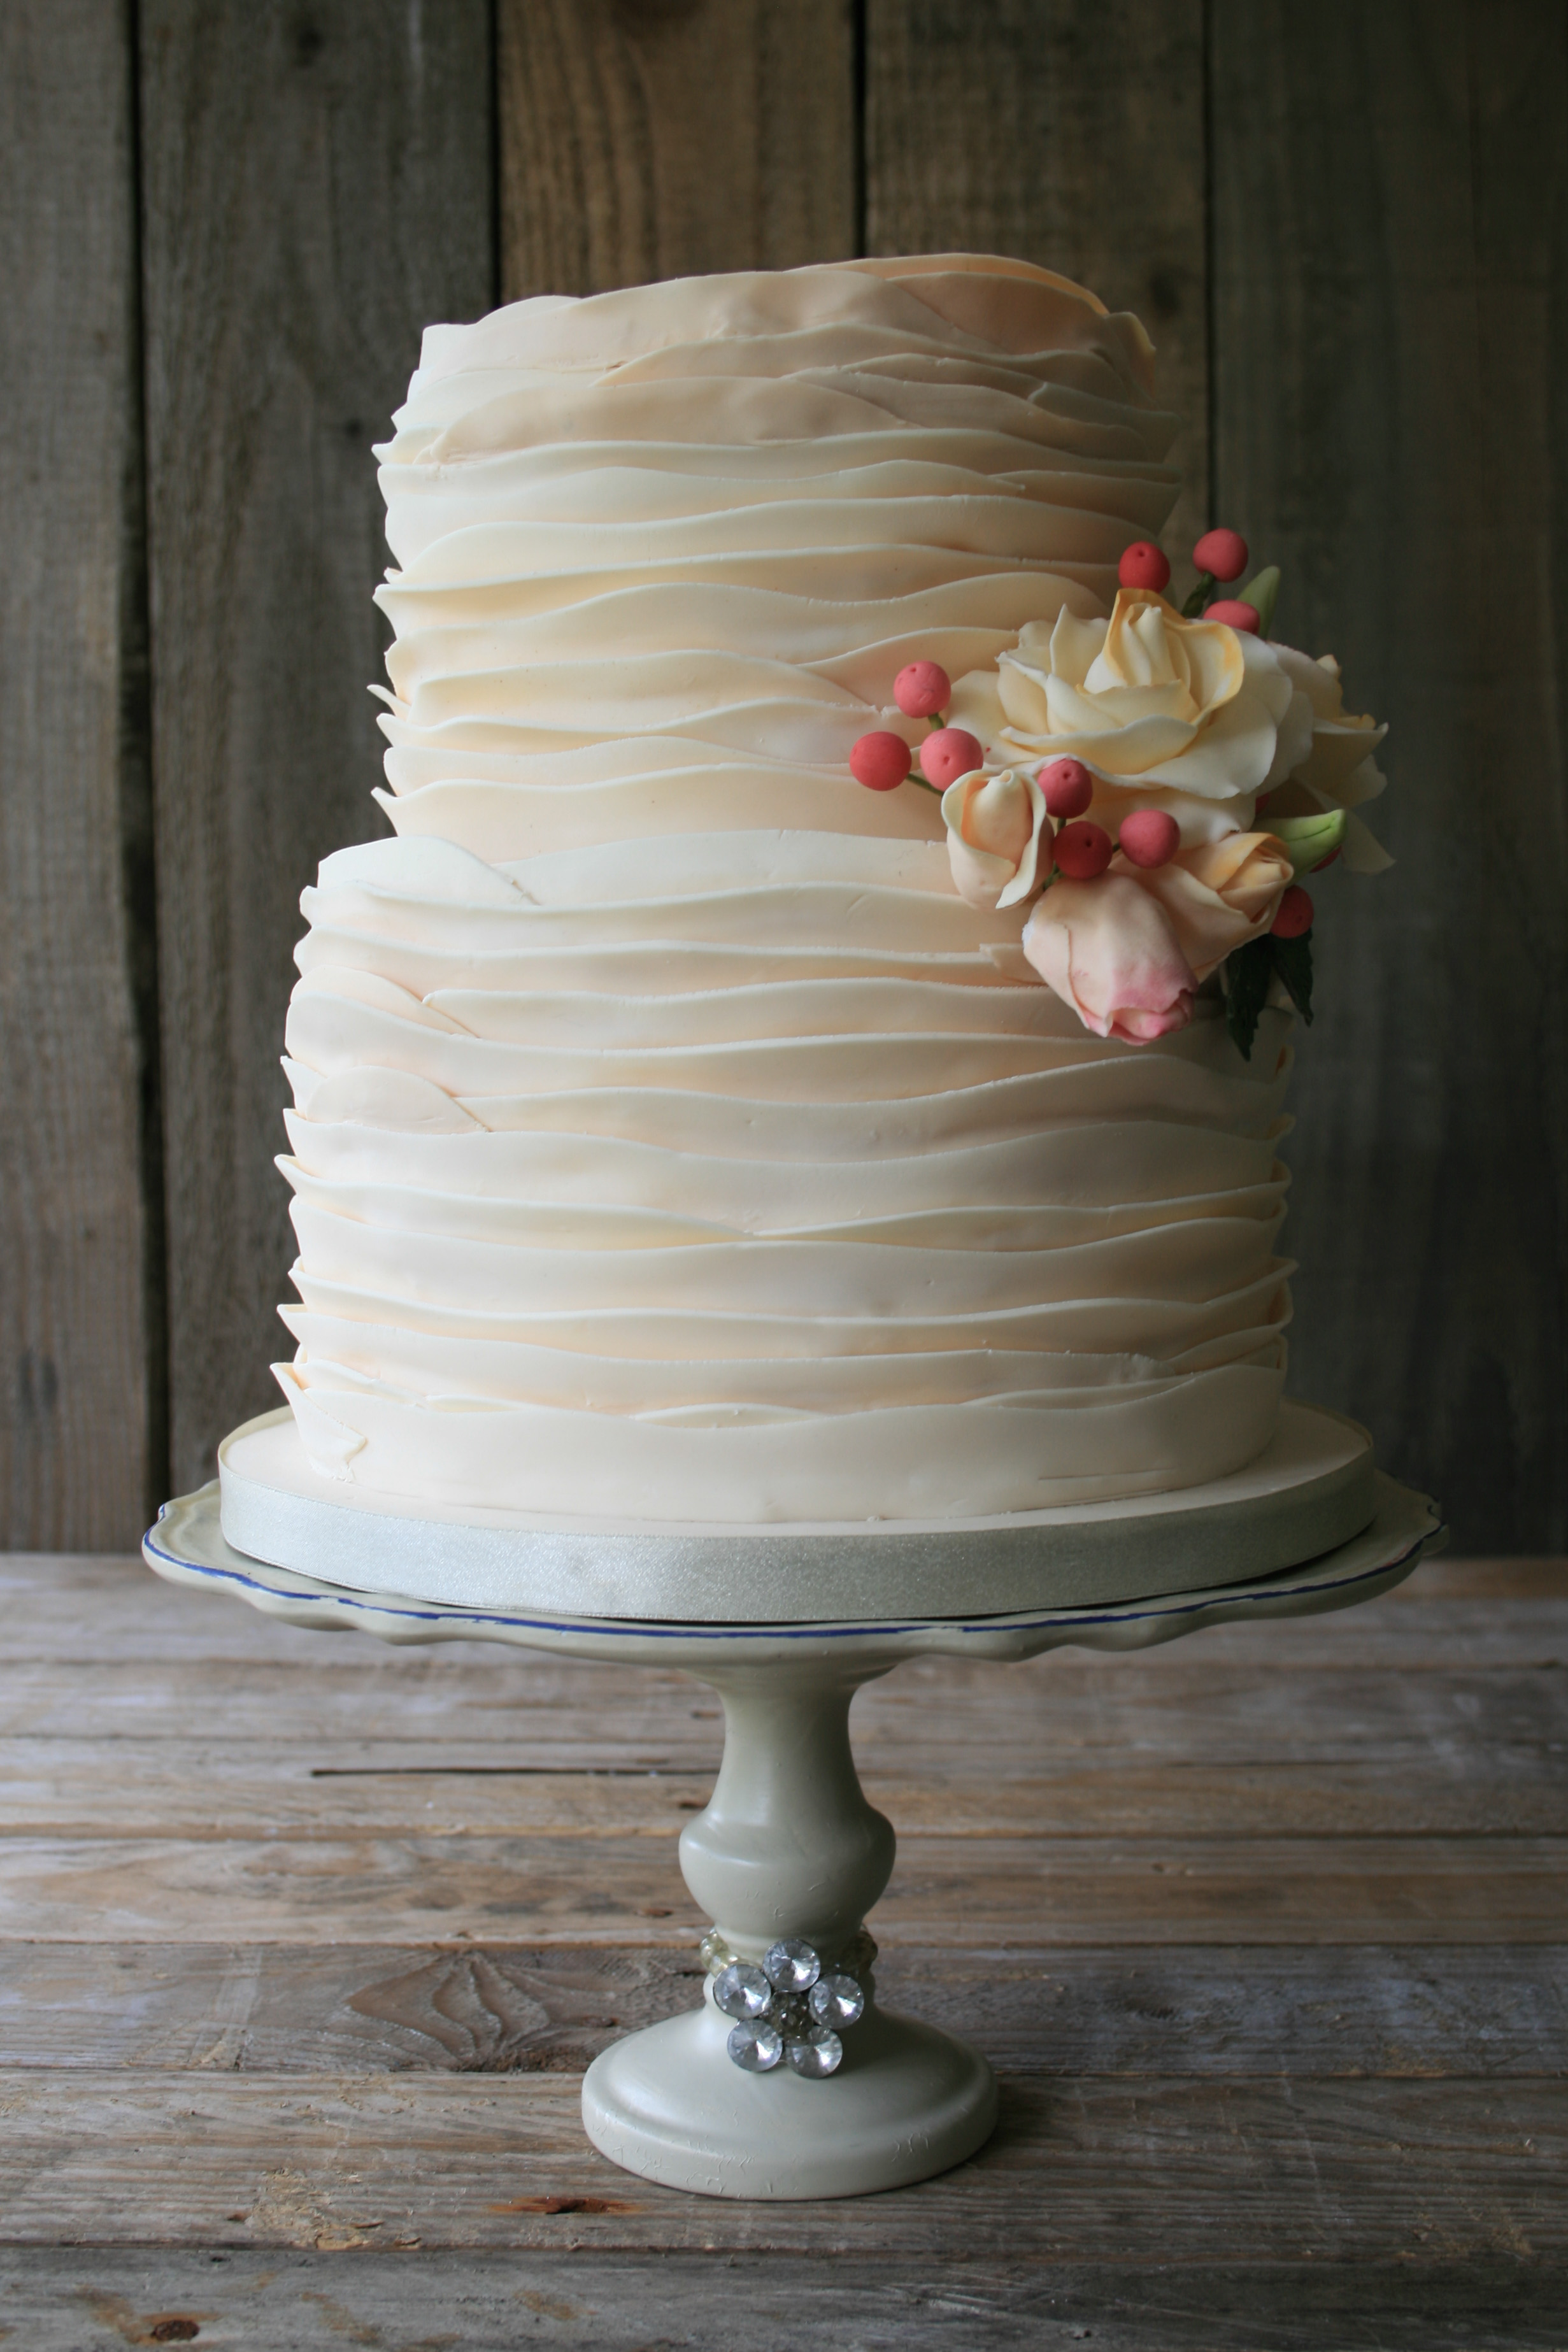 Iced Ribbon Wedding Cake